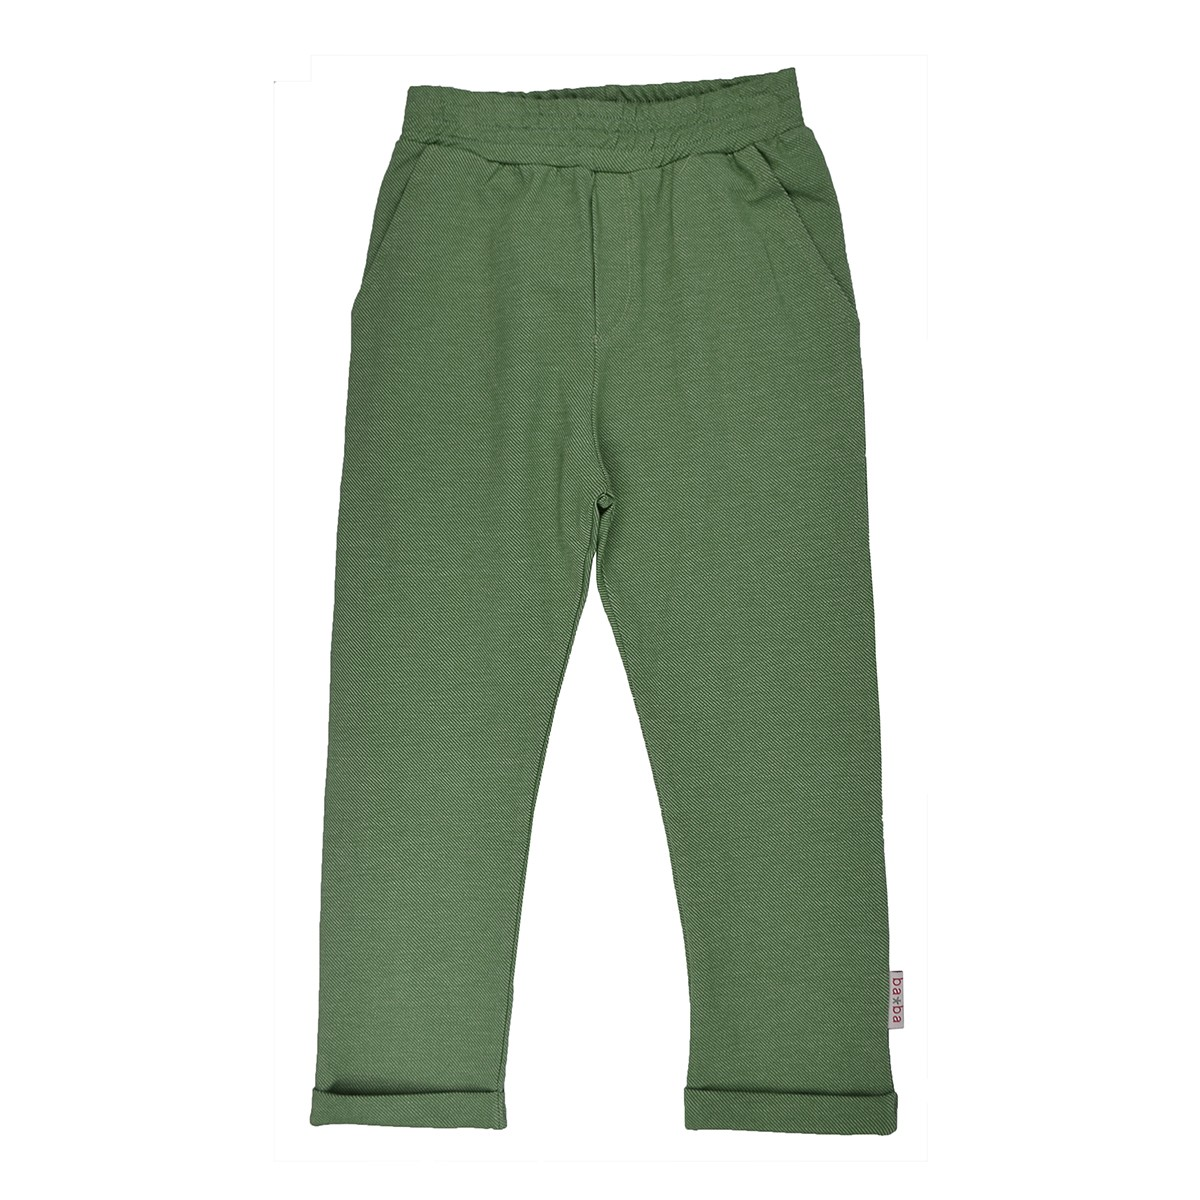 Pants artisjok